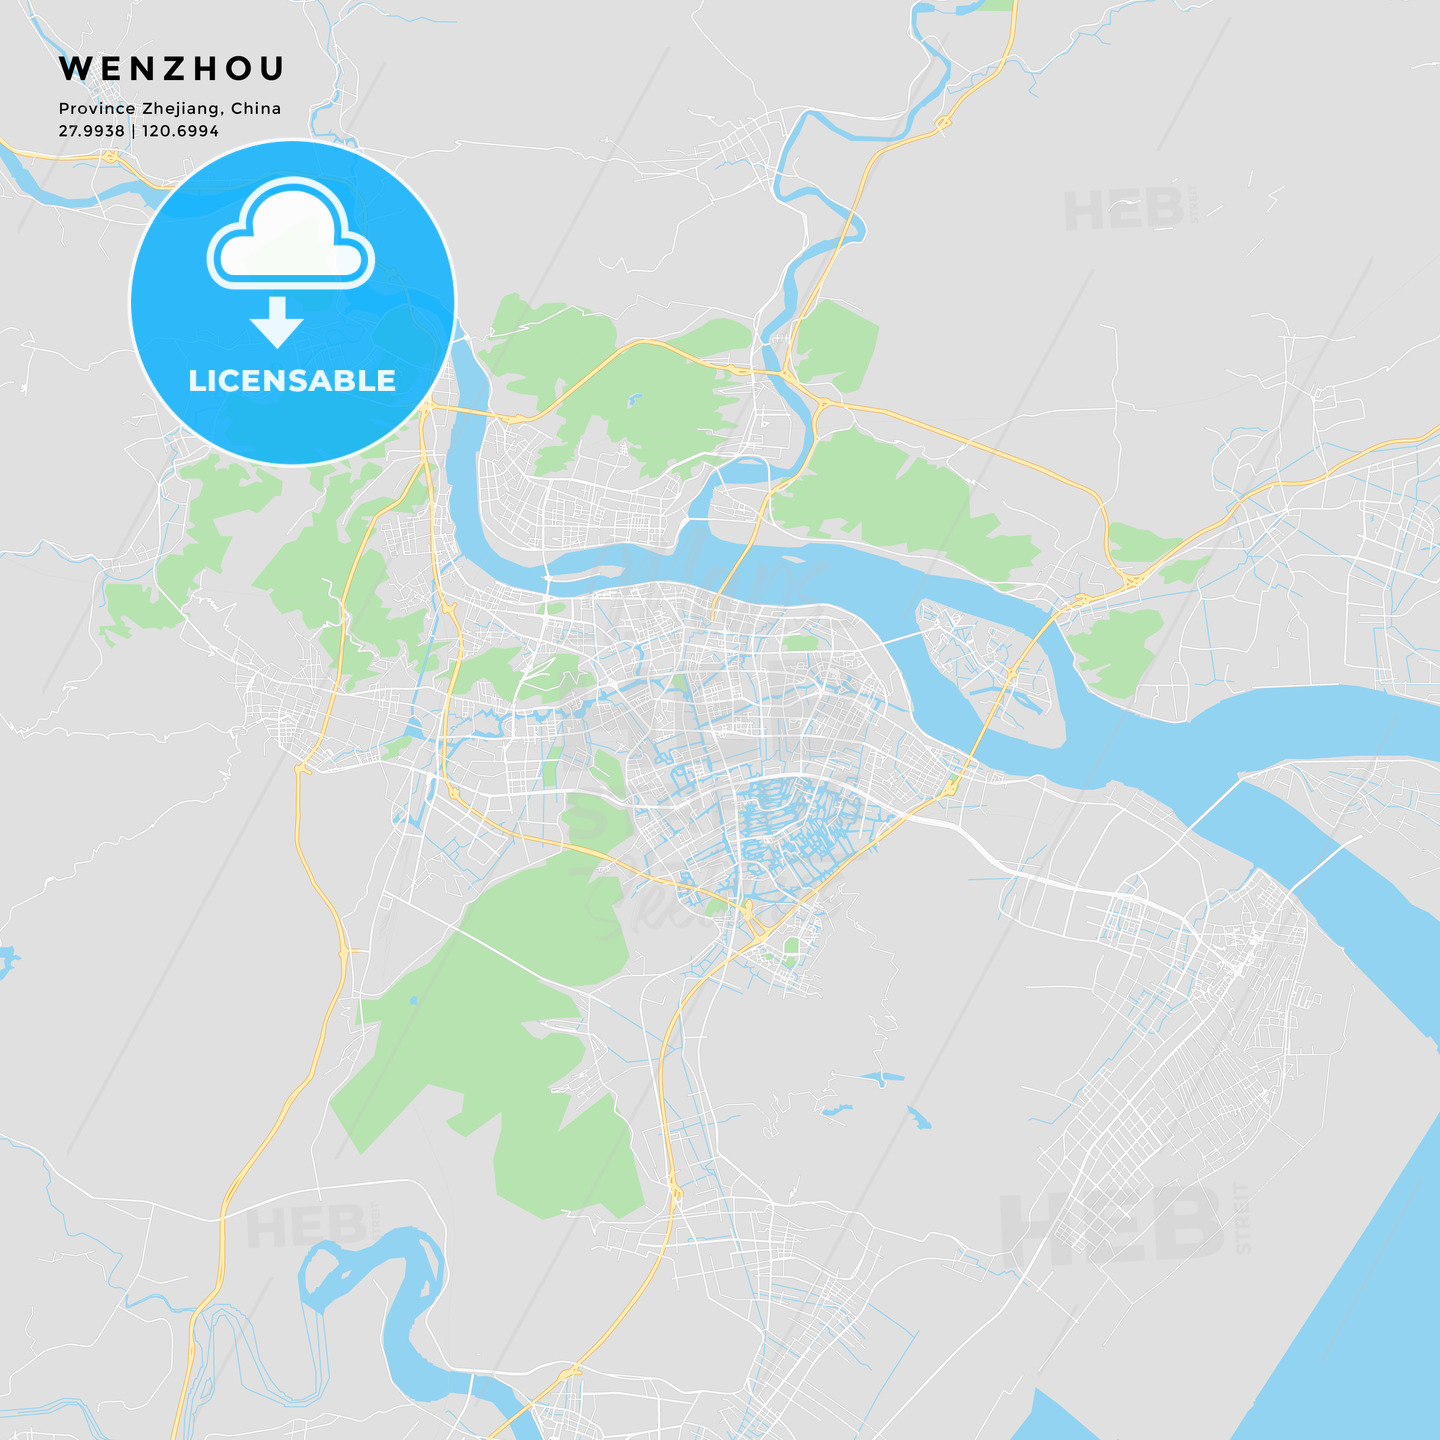 Printable Street Map Of Wenzhou China Hebstreits